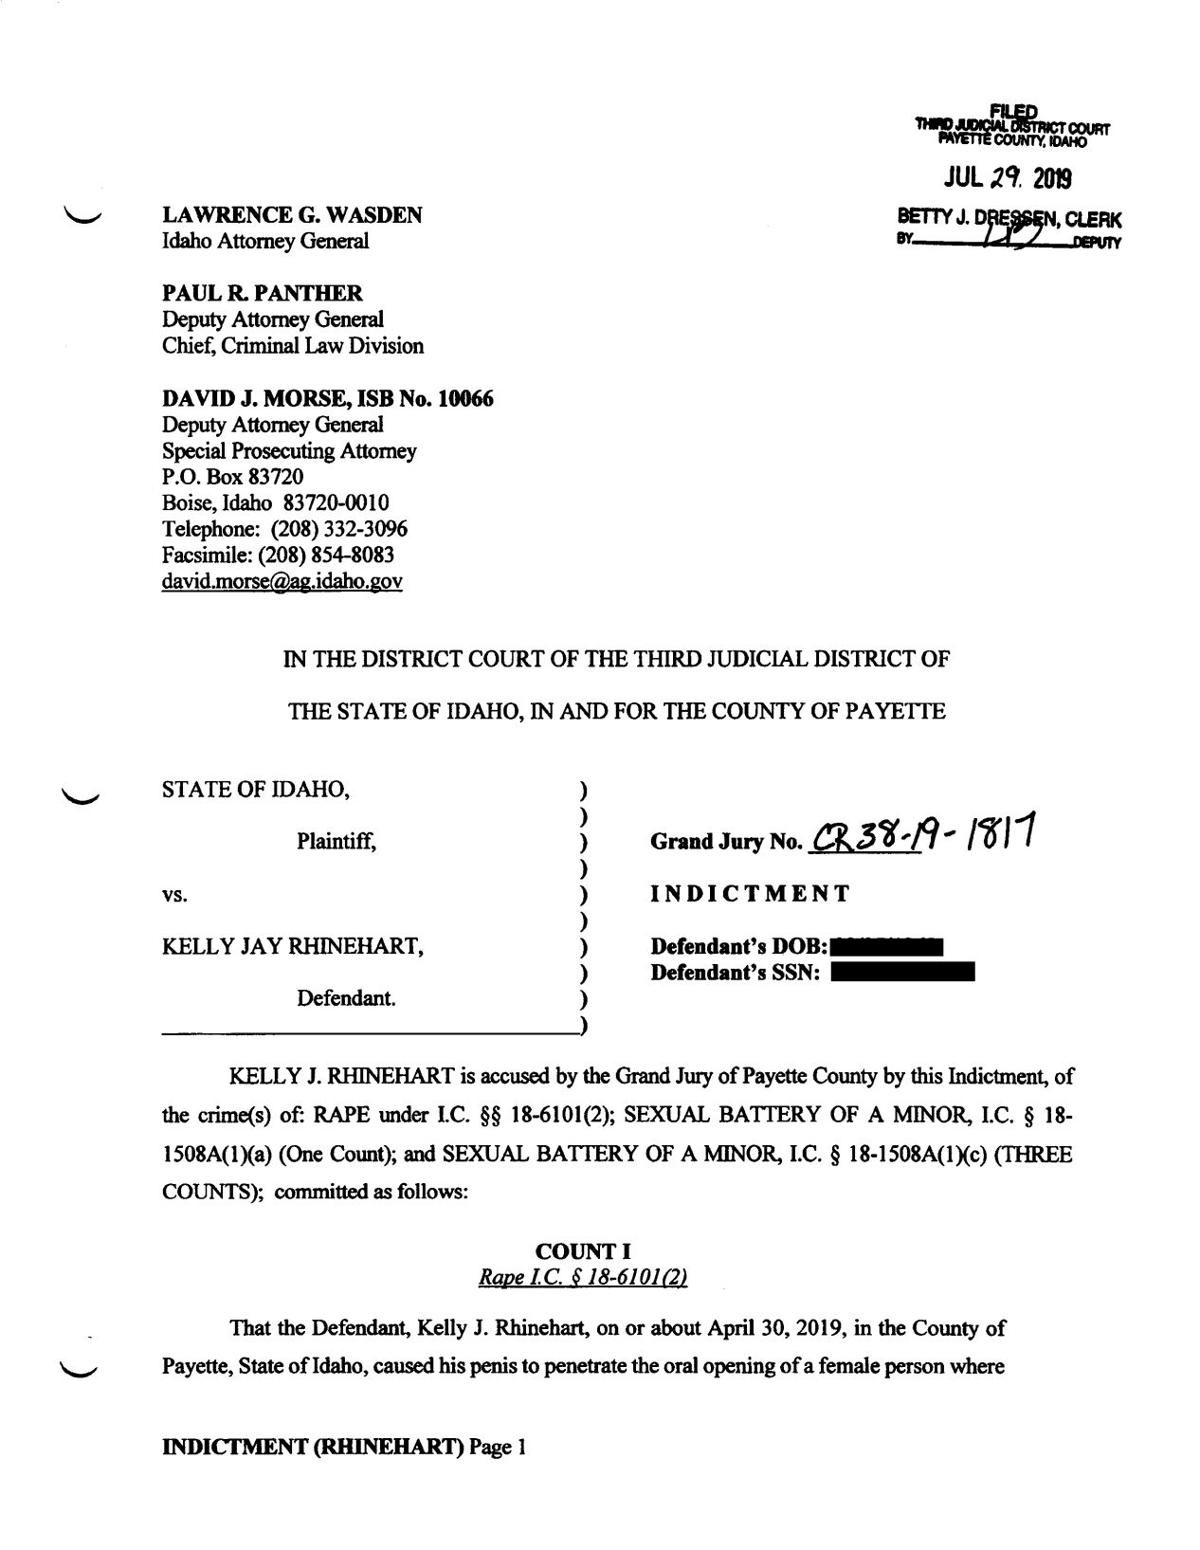 Kelly Rhinehart Indictment page 1